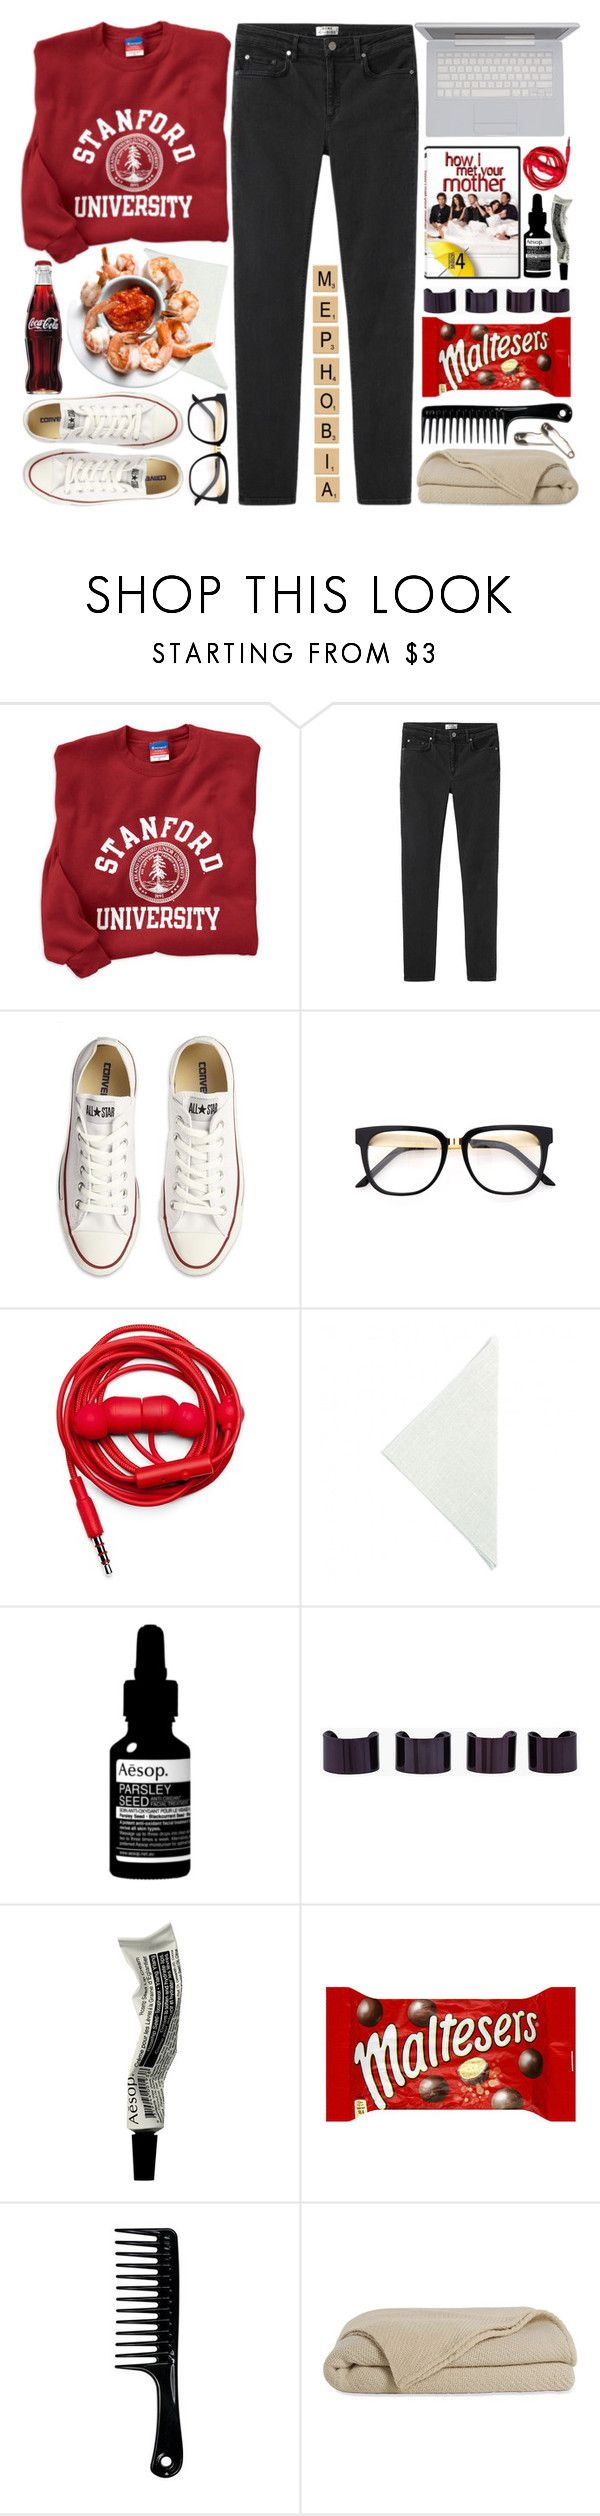 """""""Mephobia"""" by poppyy-92 ❤ liked on Polyvore featuring Acne Studios, Converse, Urbanears, Moltex, Aesop and Maison Margiela"""